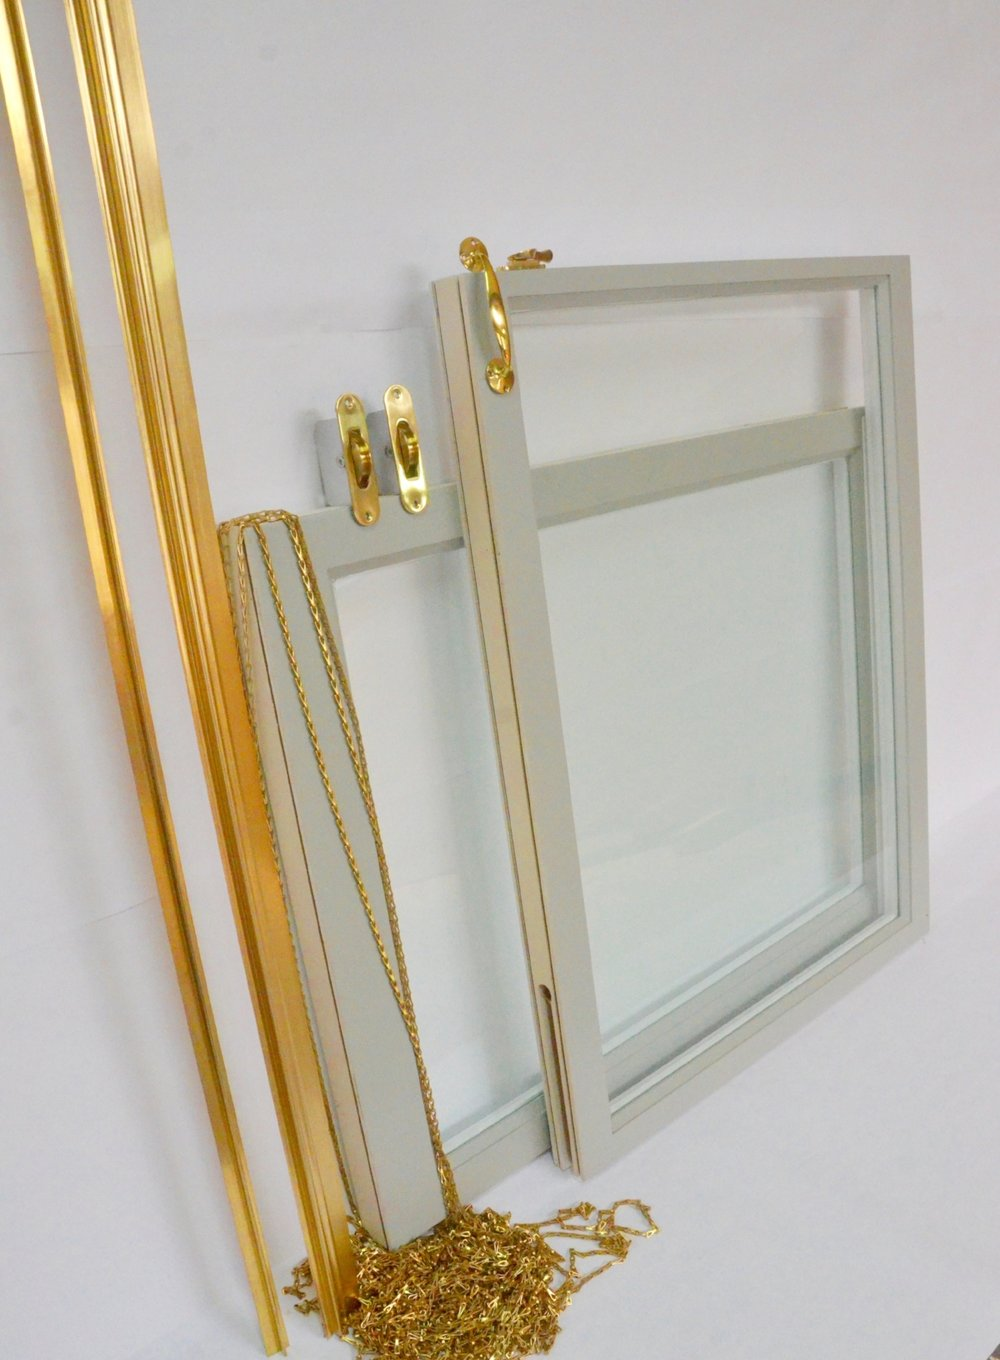 Right Path Windows & Restoration can fabricate new sashes as well  as supply the necessary specialty sash window hardware.